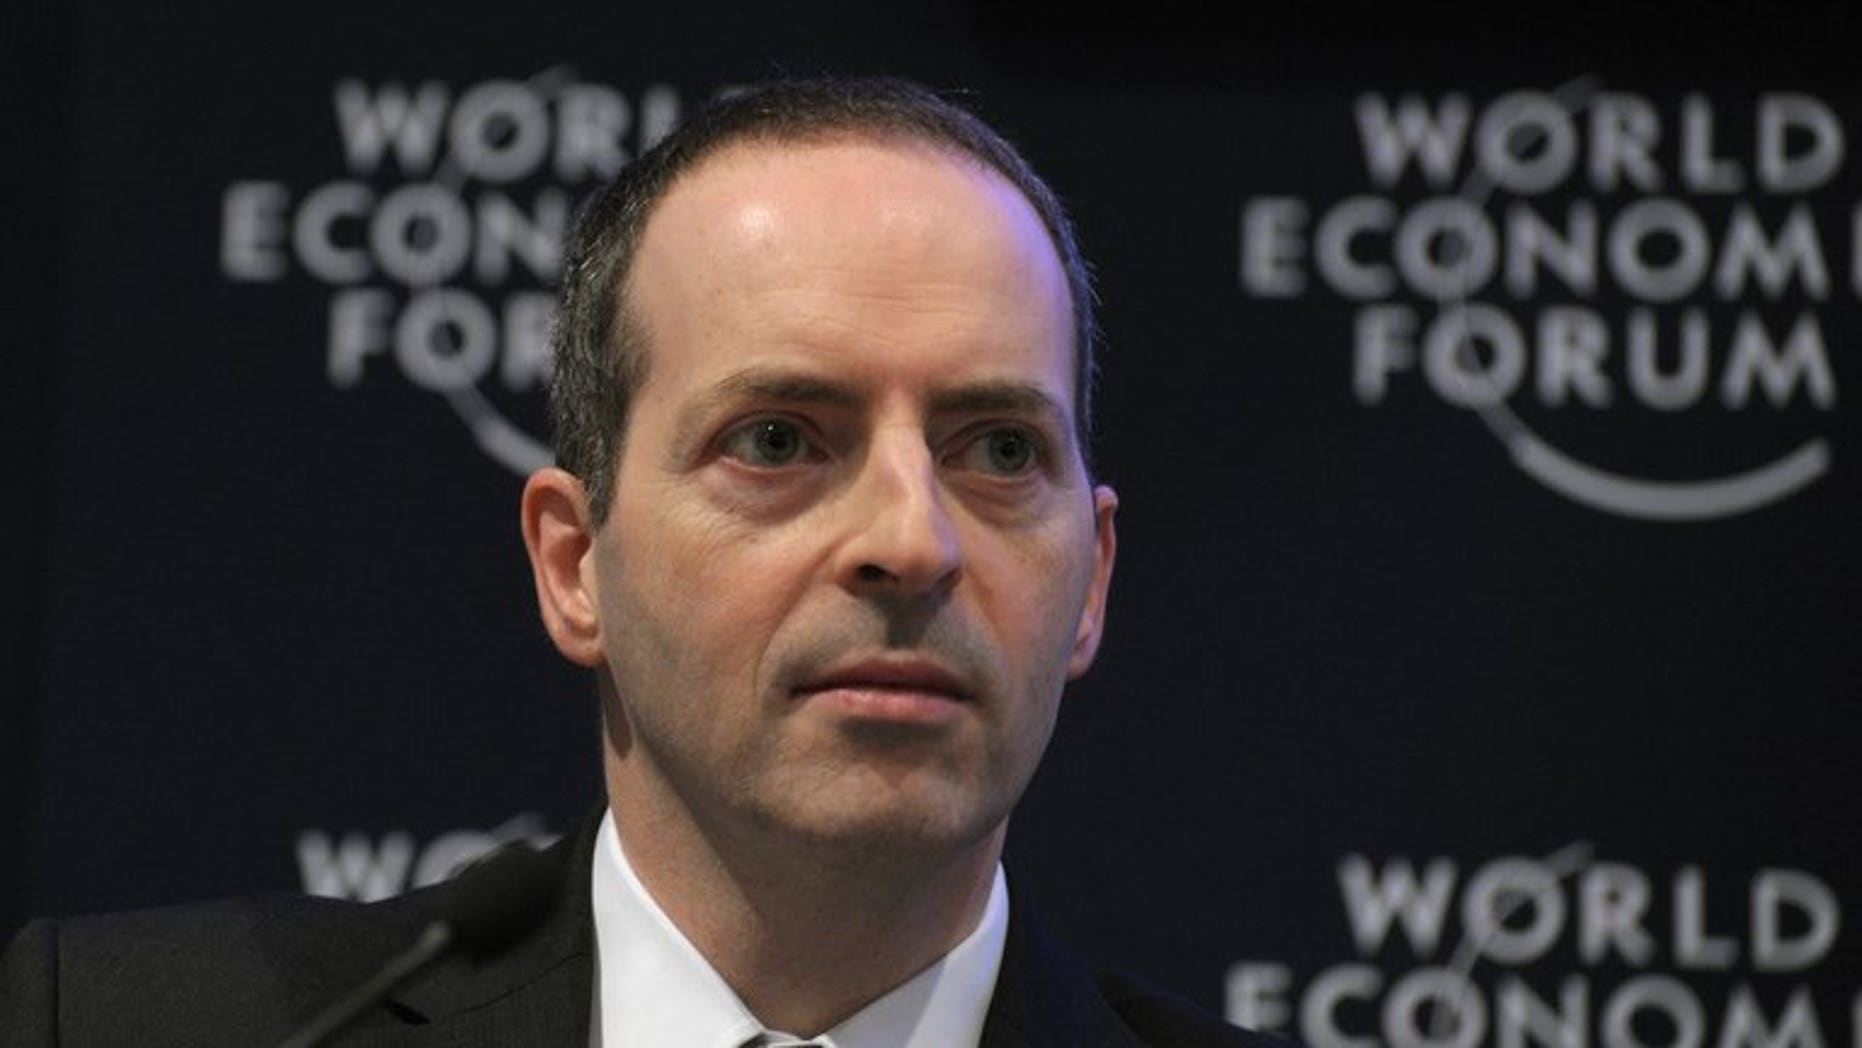 BT chief executive Ian Livingston at the World Economic Forum in Davos on January 27, 2011. Livingston has agreed to switch jobs to join the coalition government as trade minister, Prime Minister David Cameron announced on Wednesday.